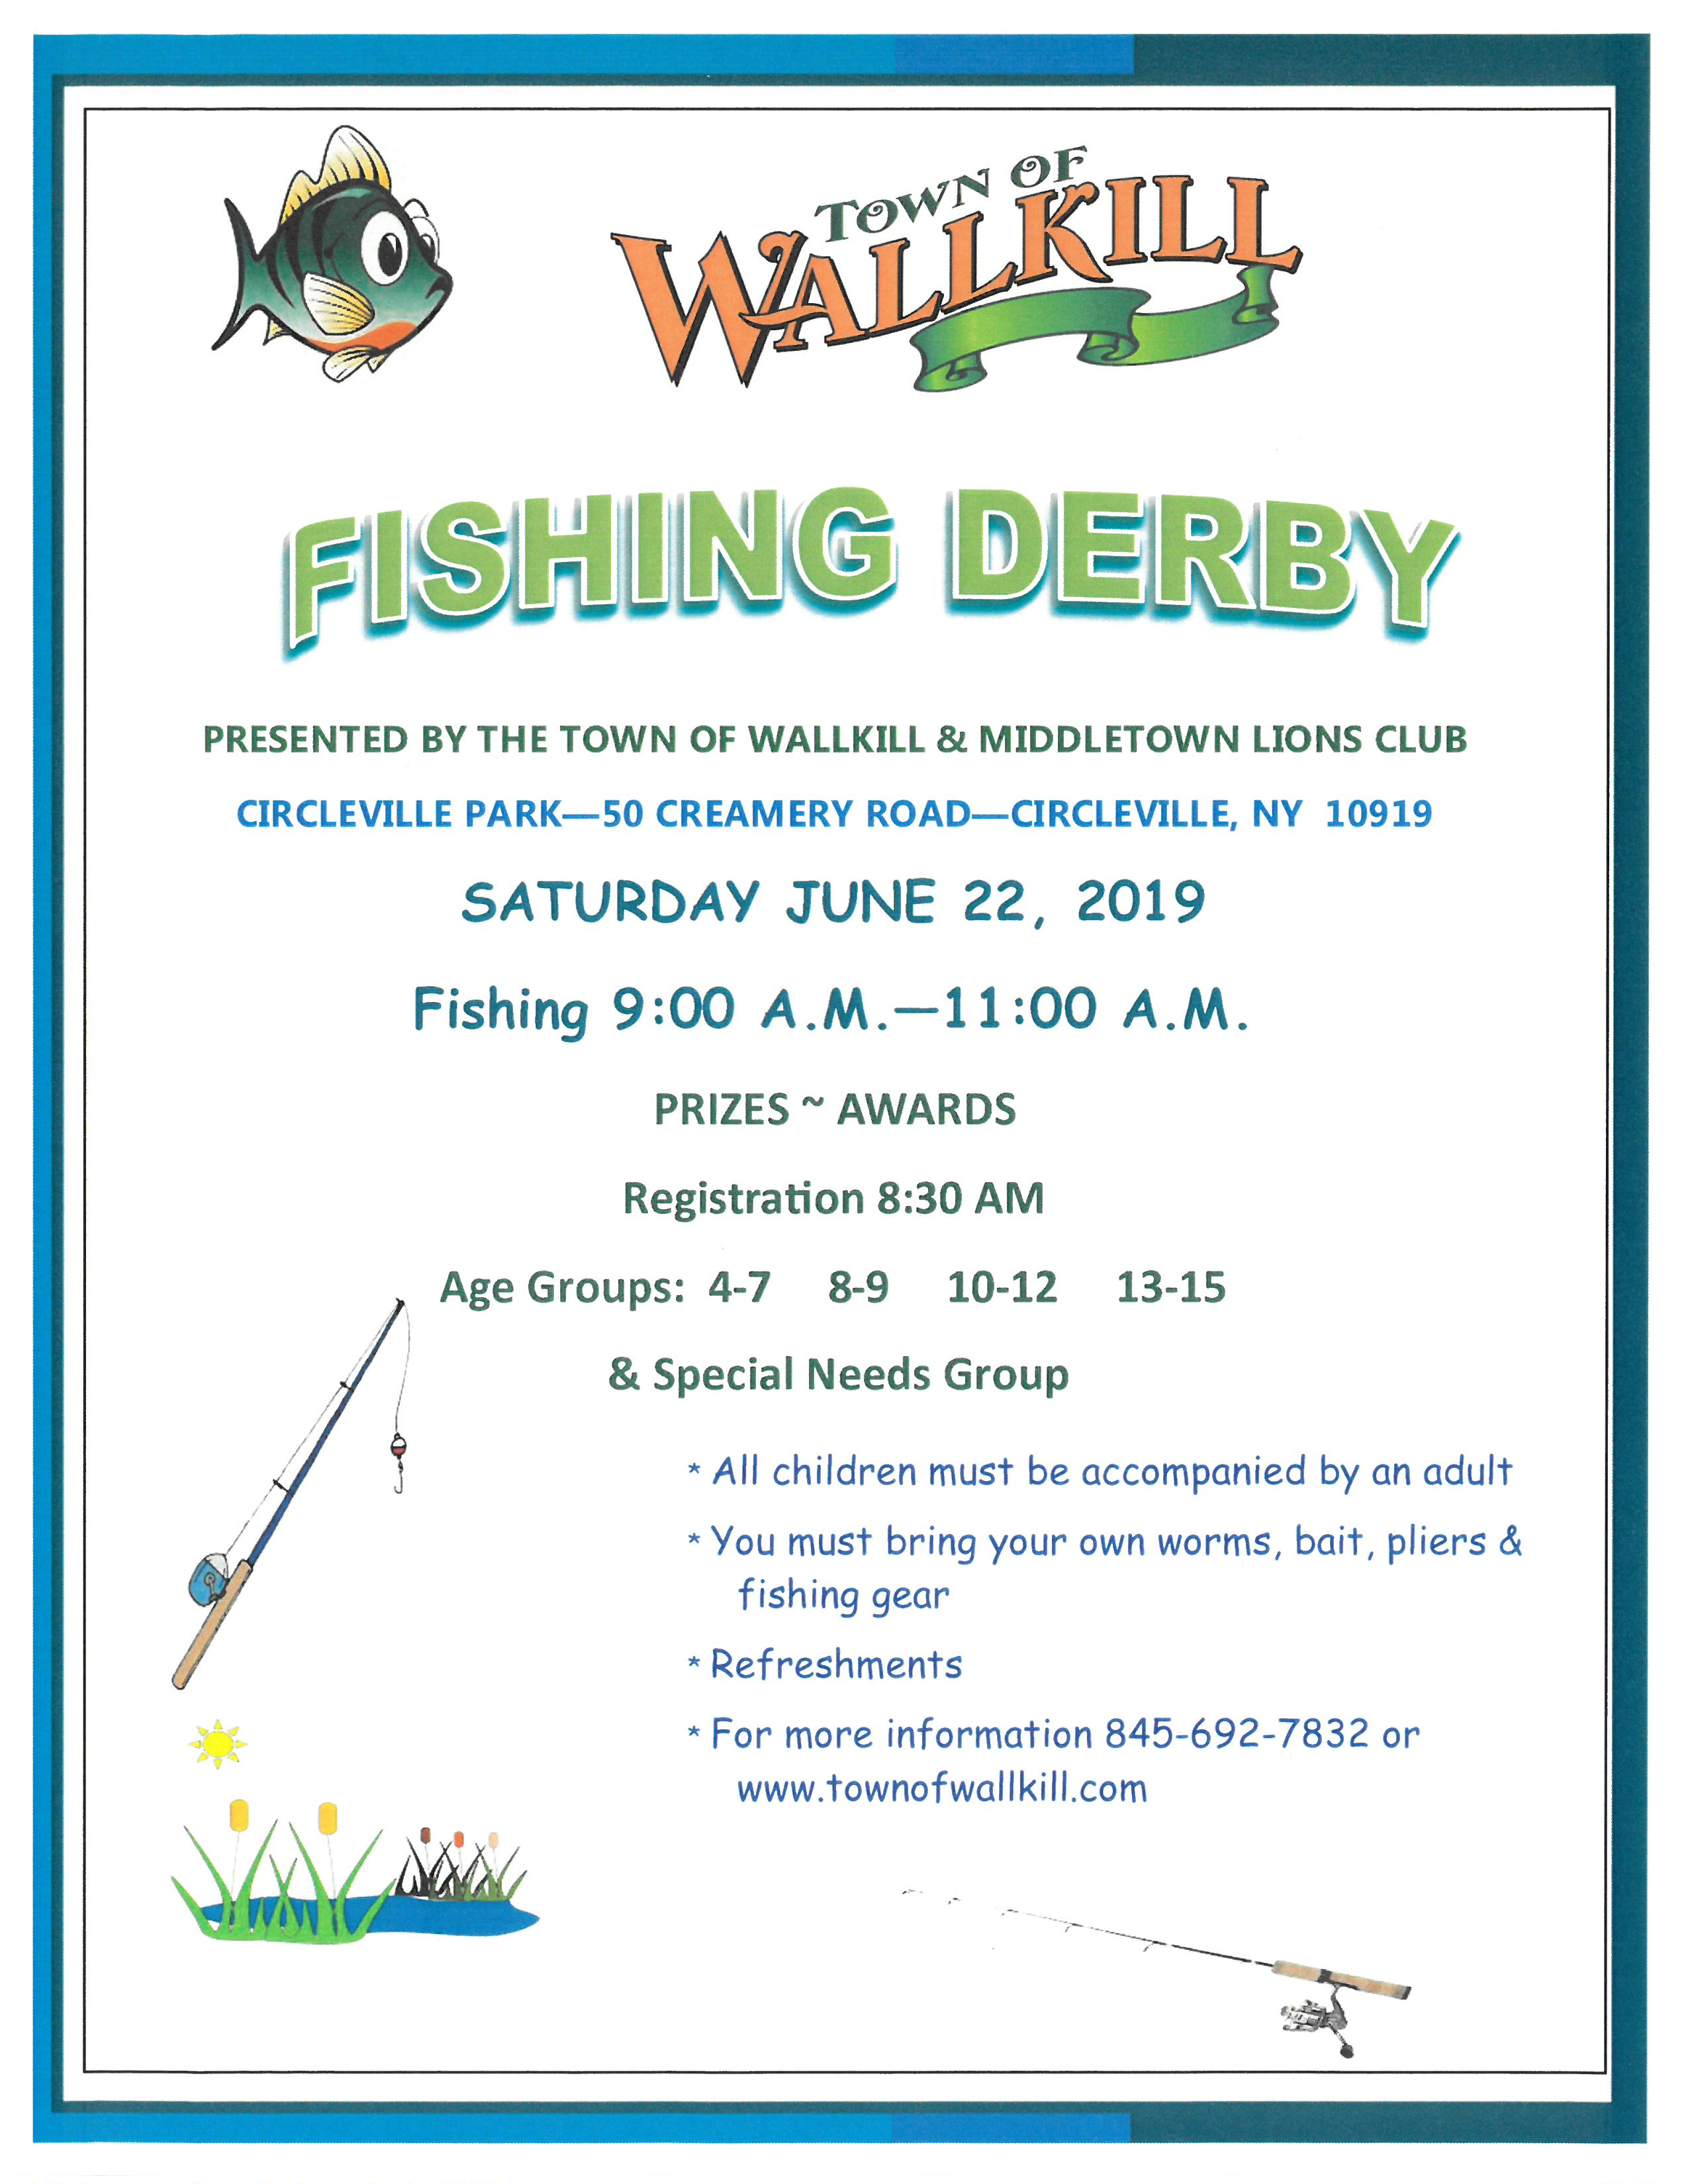 Fishing Derby Flyer 2019